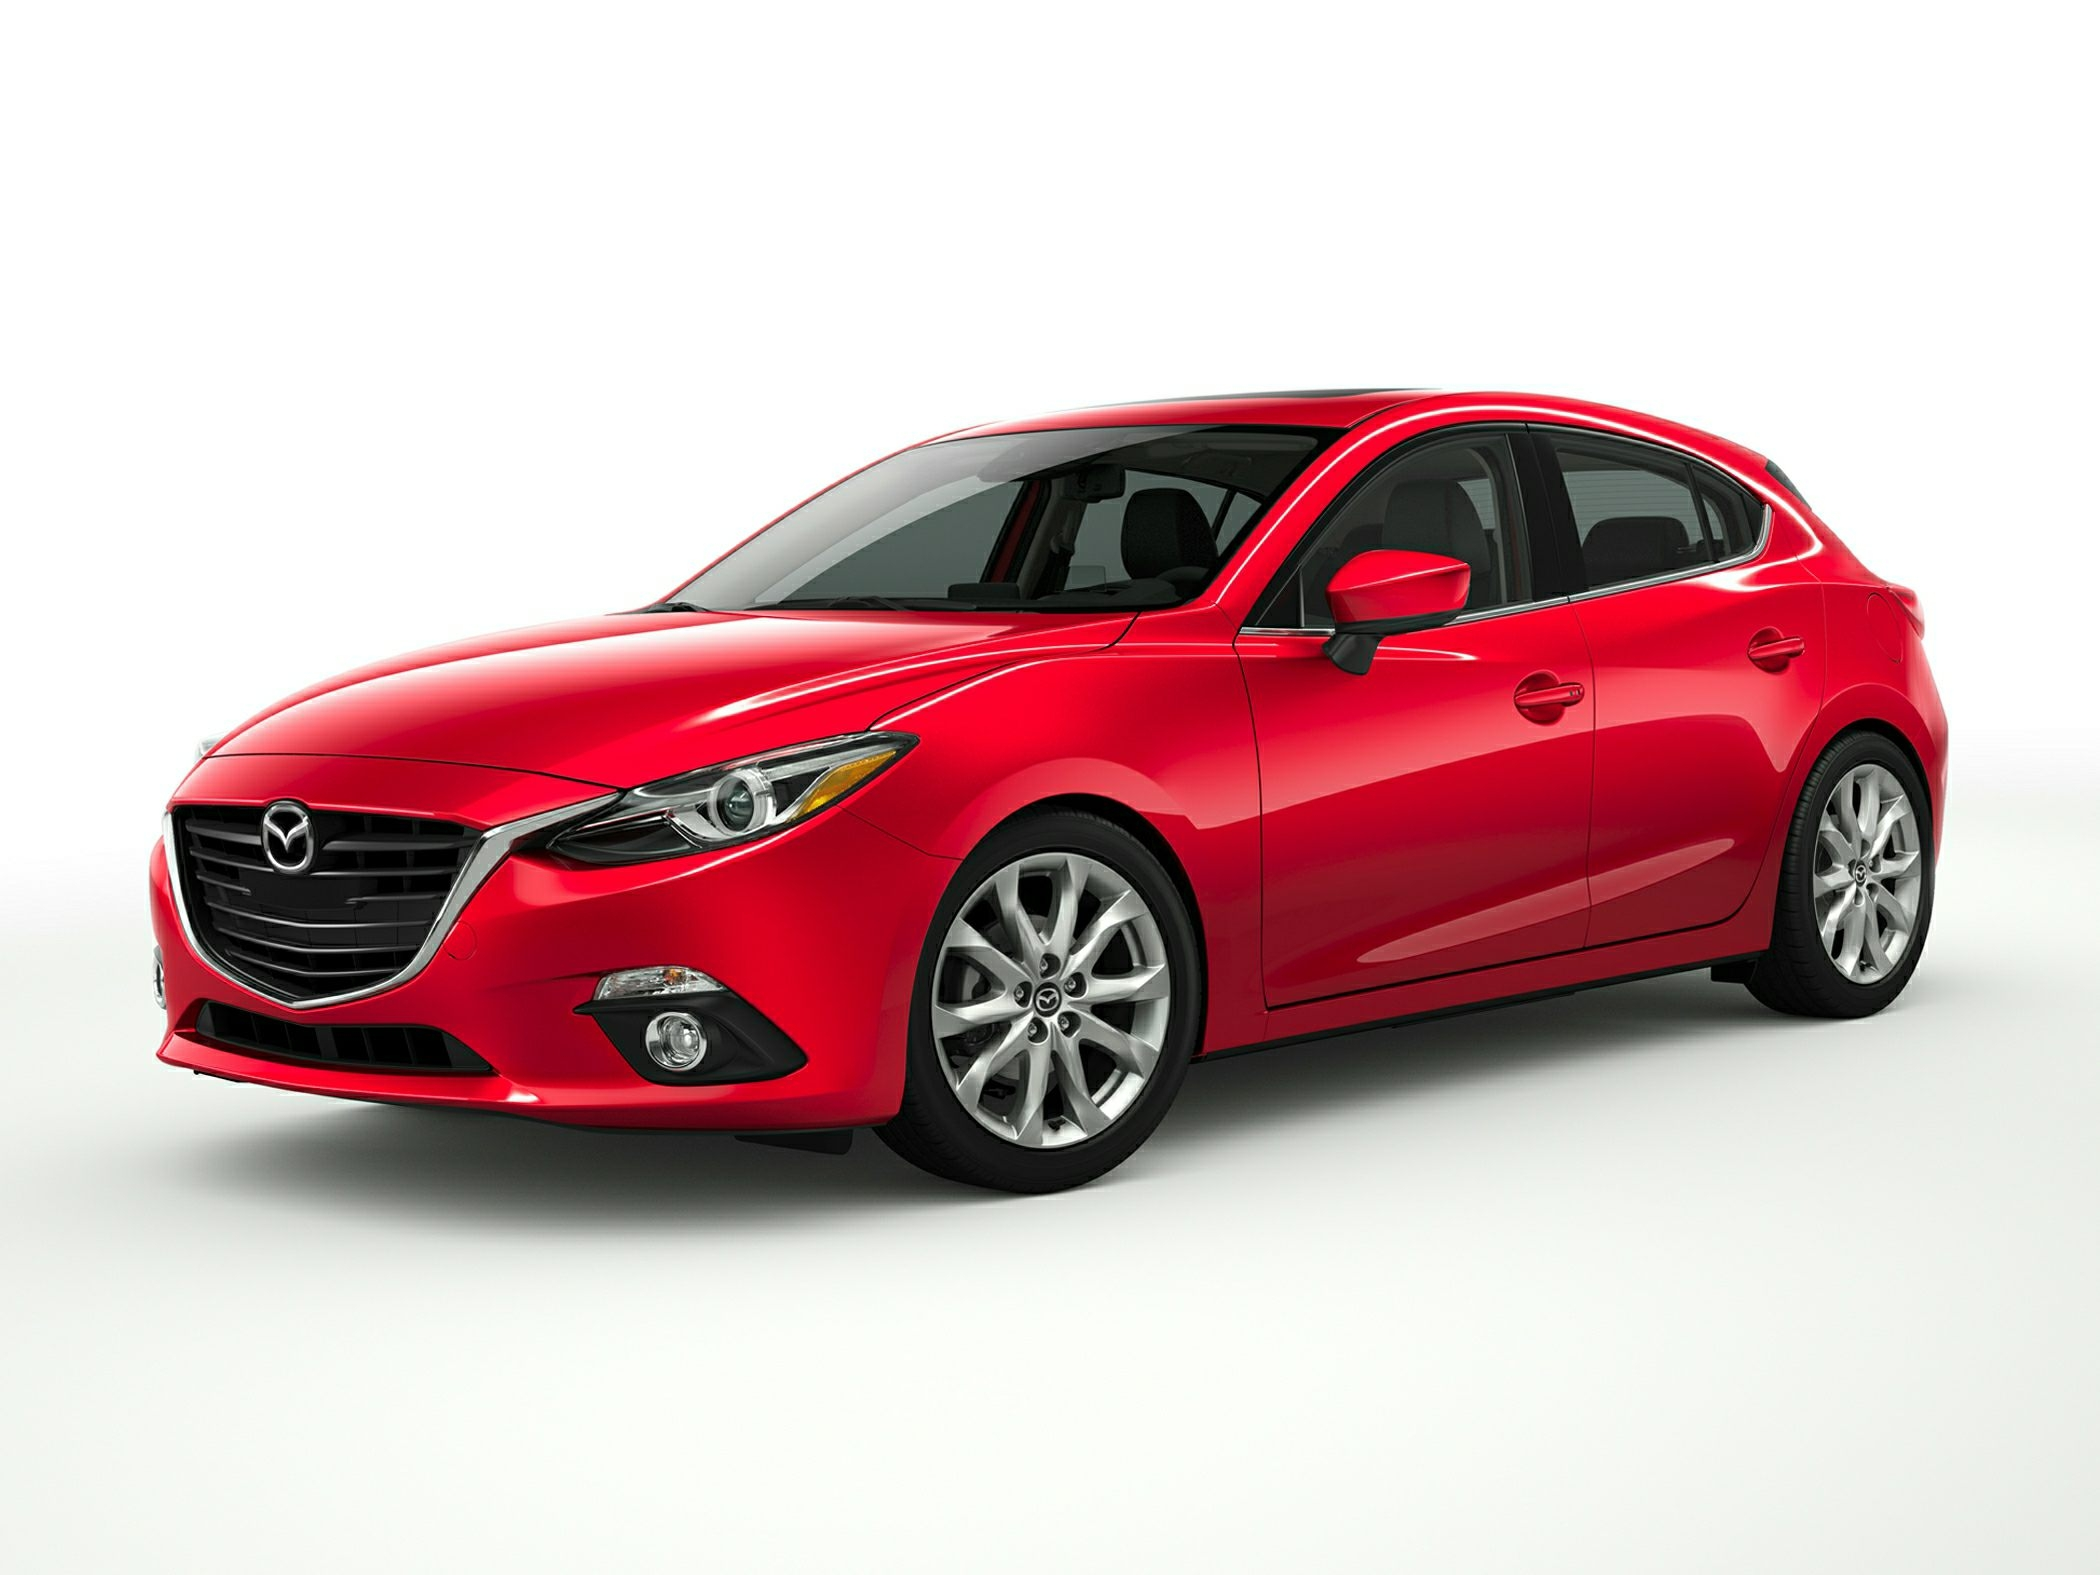 2015 mazda mazda3 price photos reviews amp features mazda3 invoice price